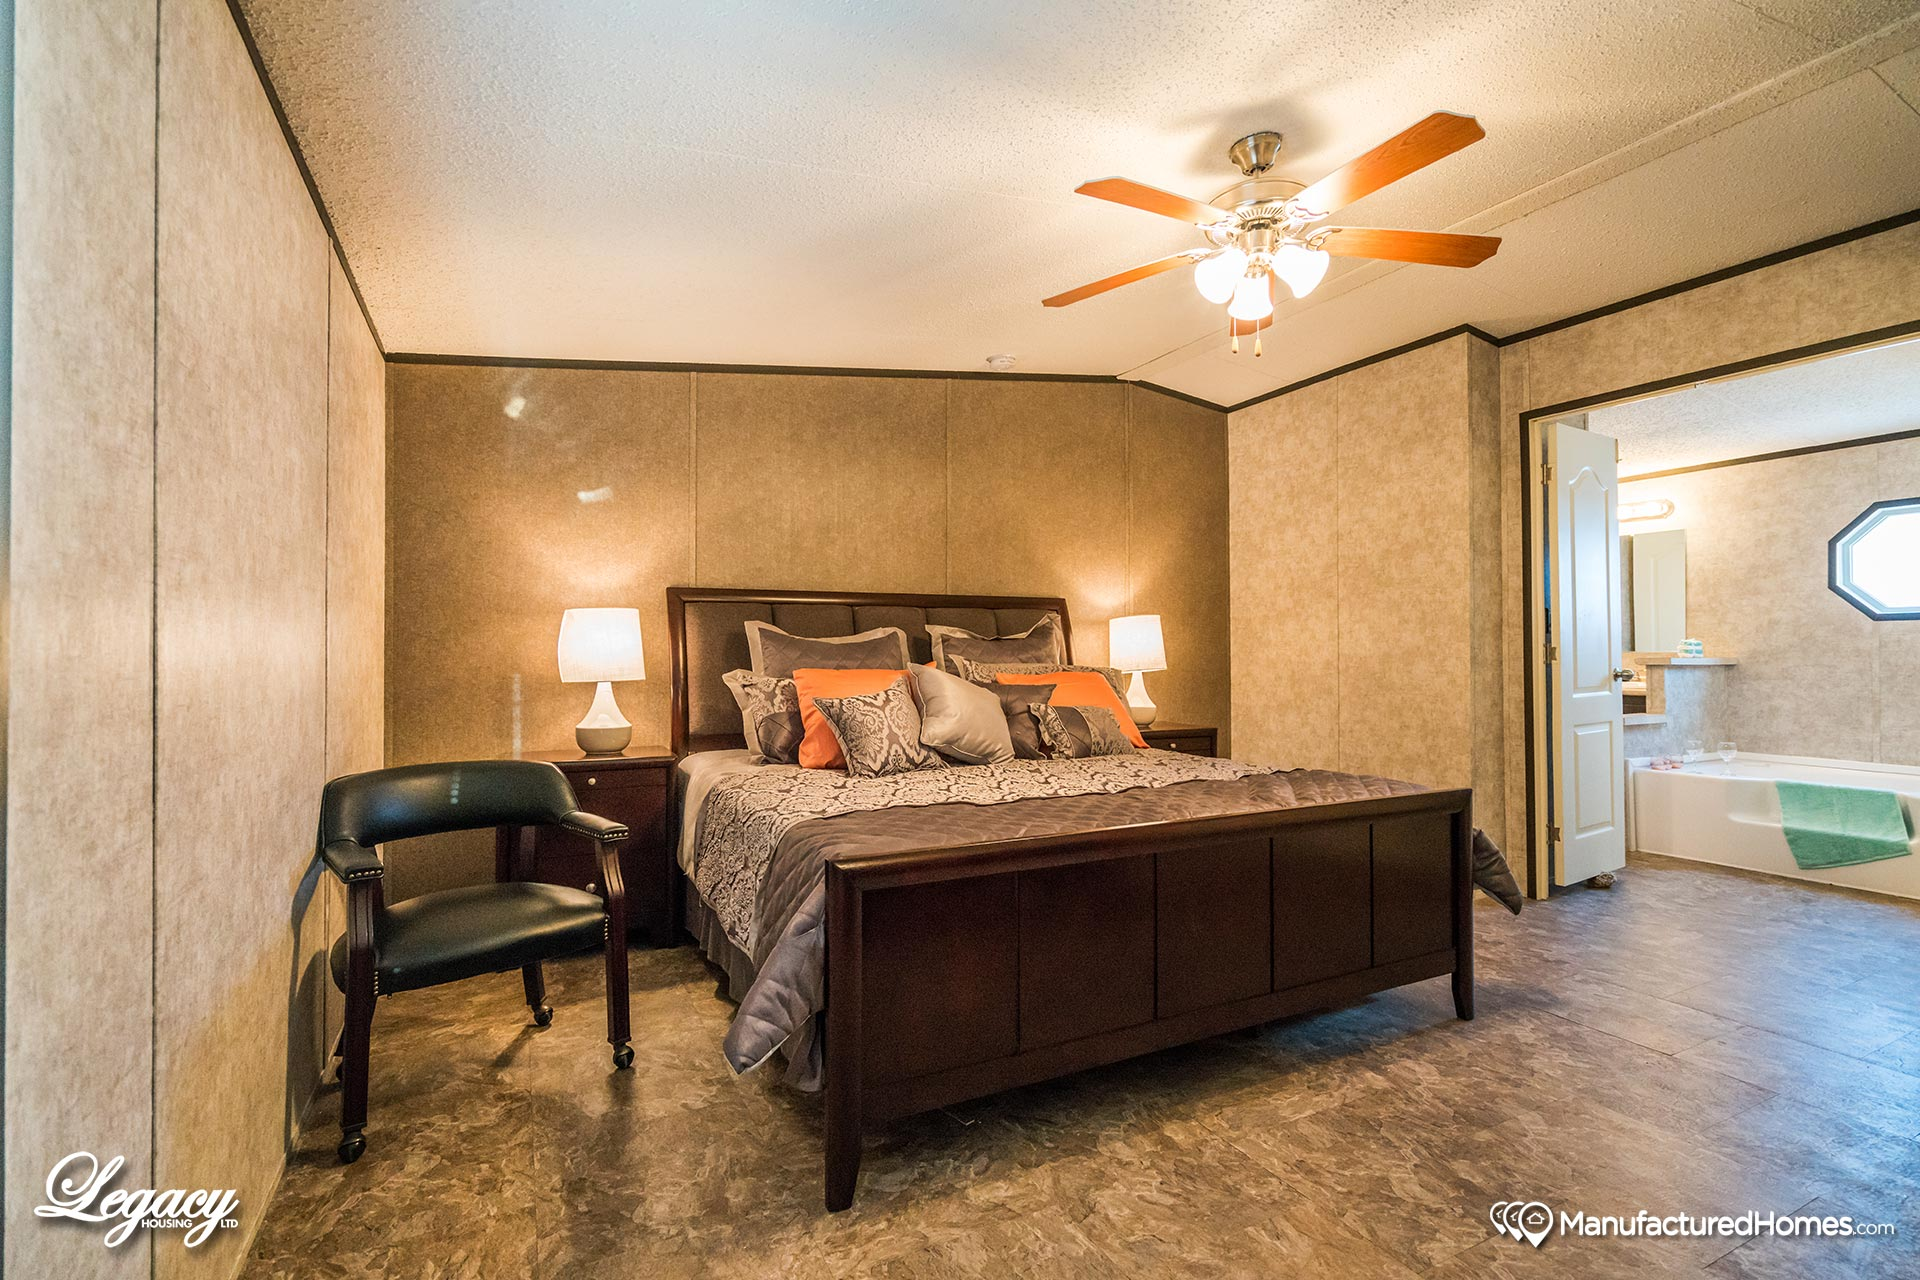 Select Legacy / S-2468-42A - Bedroom